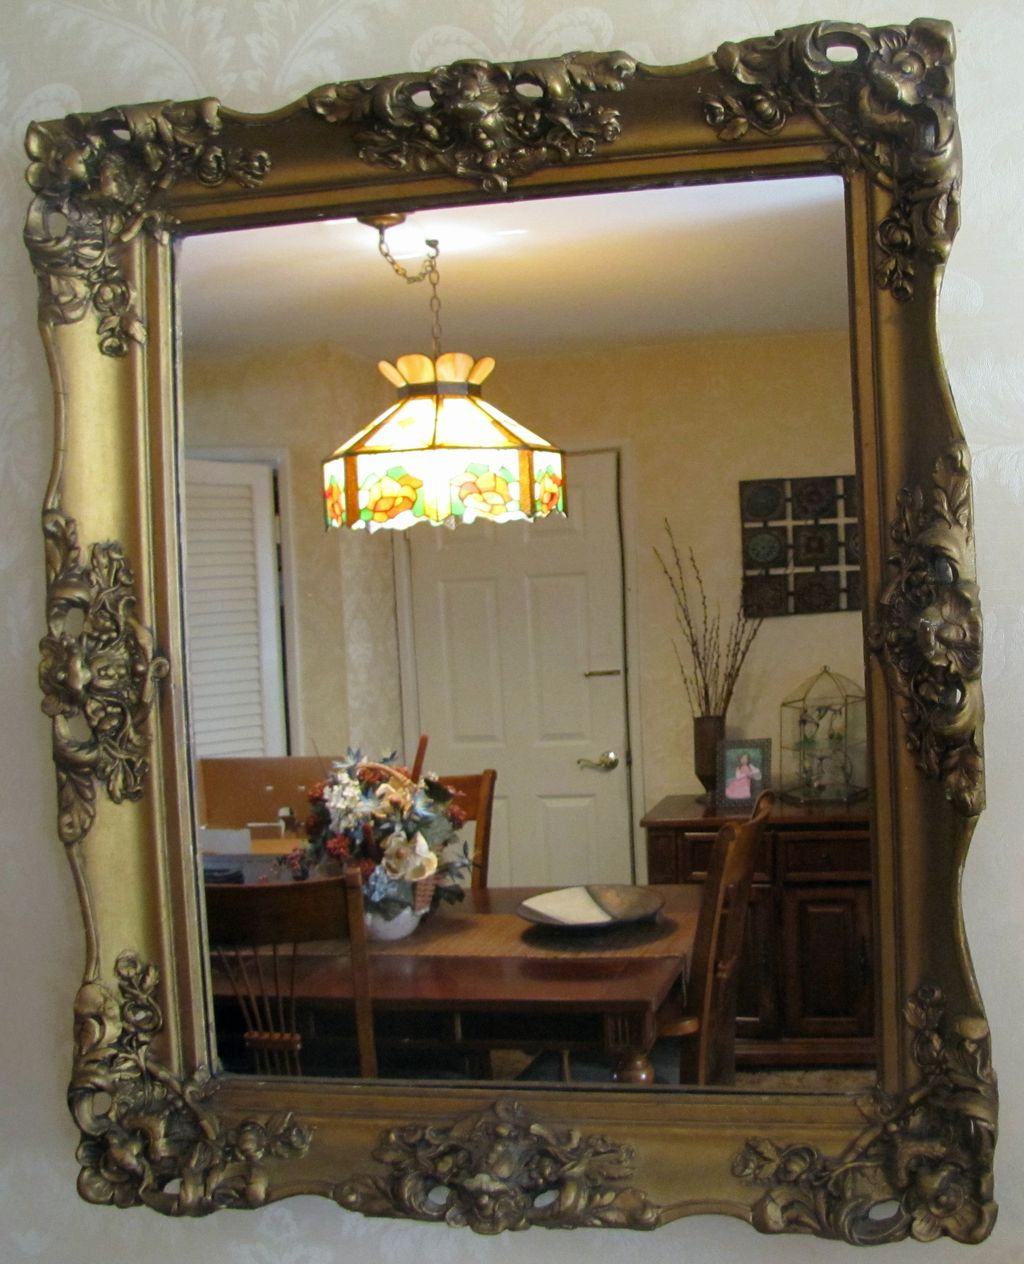 ANTIQUE VICTORIAN 19TH CENTURY Wall Mirror with Gilded Wood and Gesso Frame